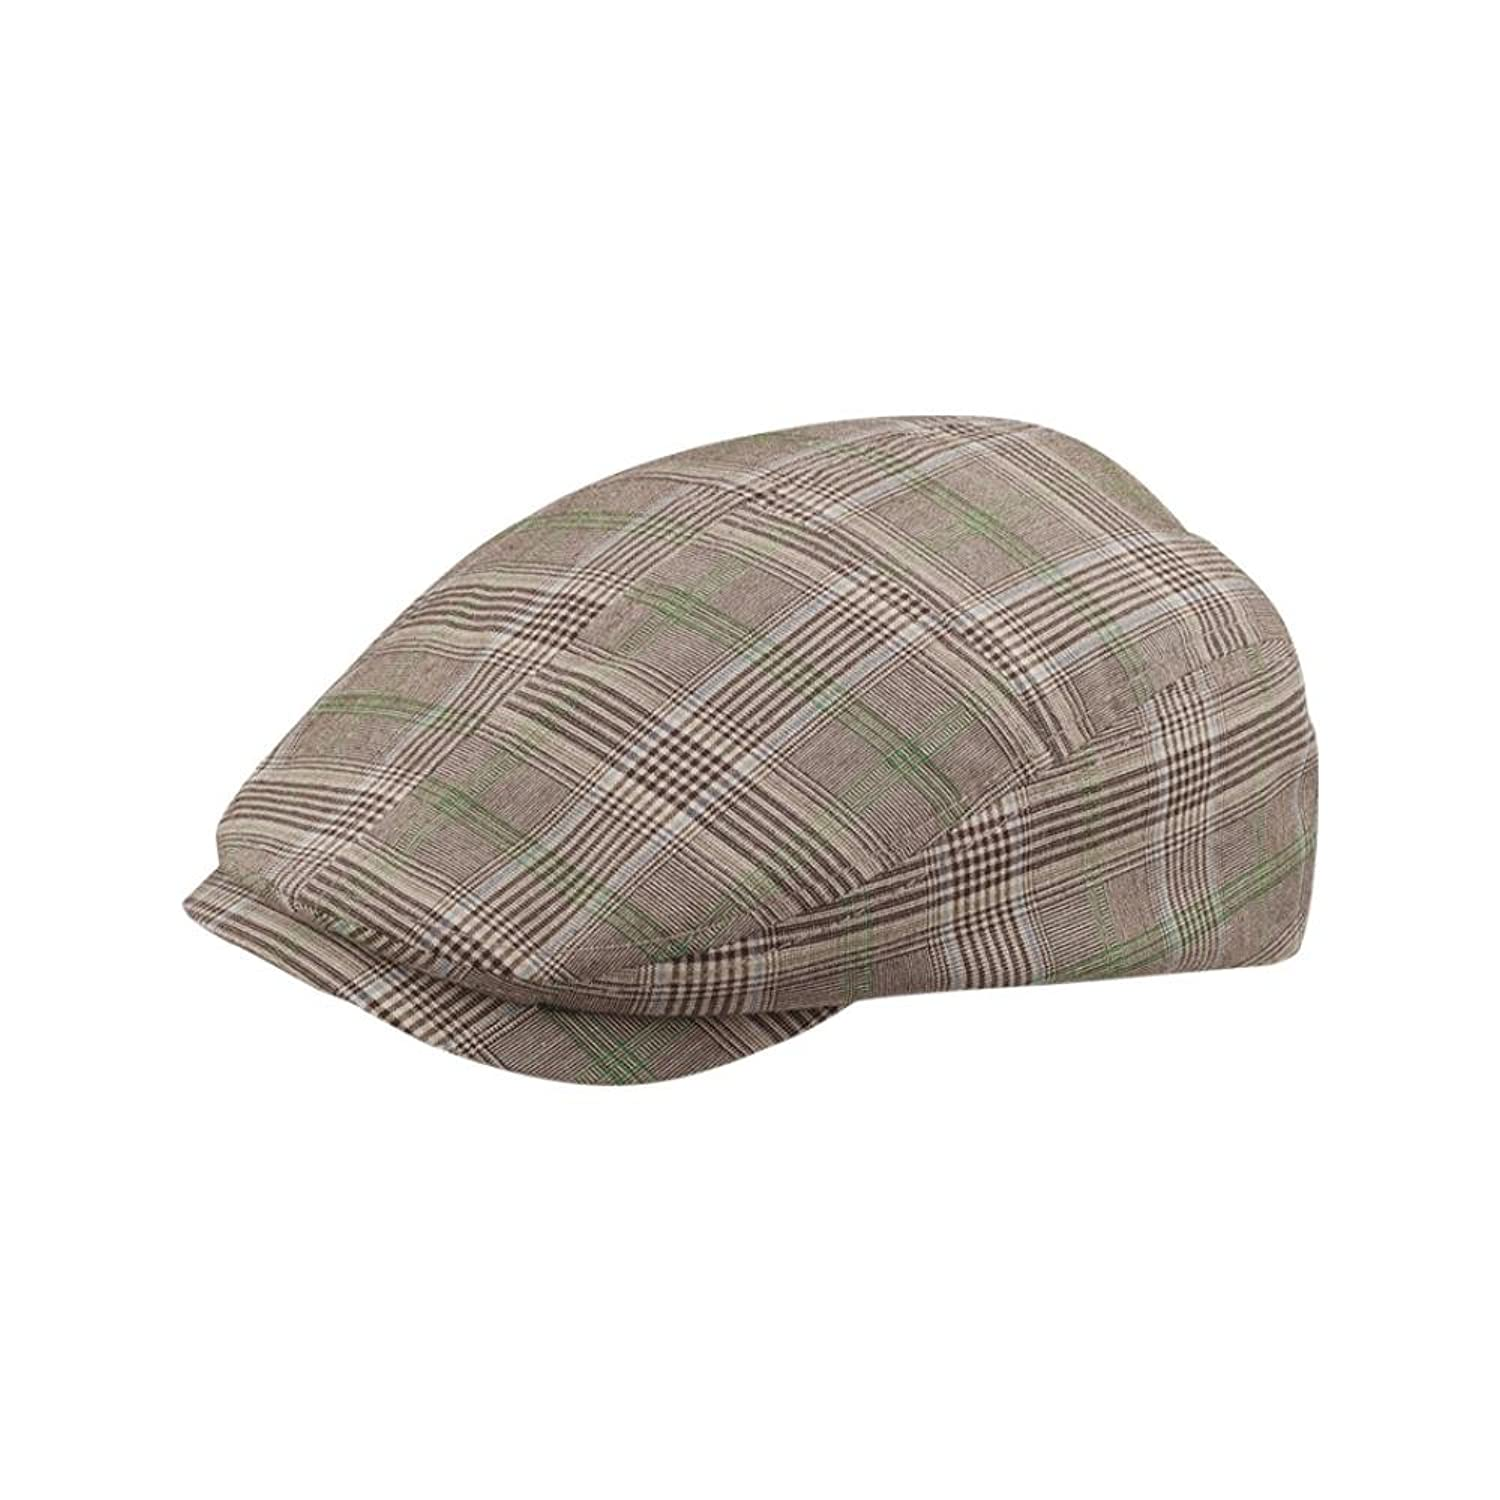 Fashion Plaid Ivy Cap - Red W10S69F BROWN-PLAID Large